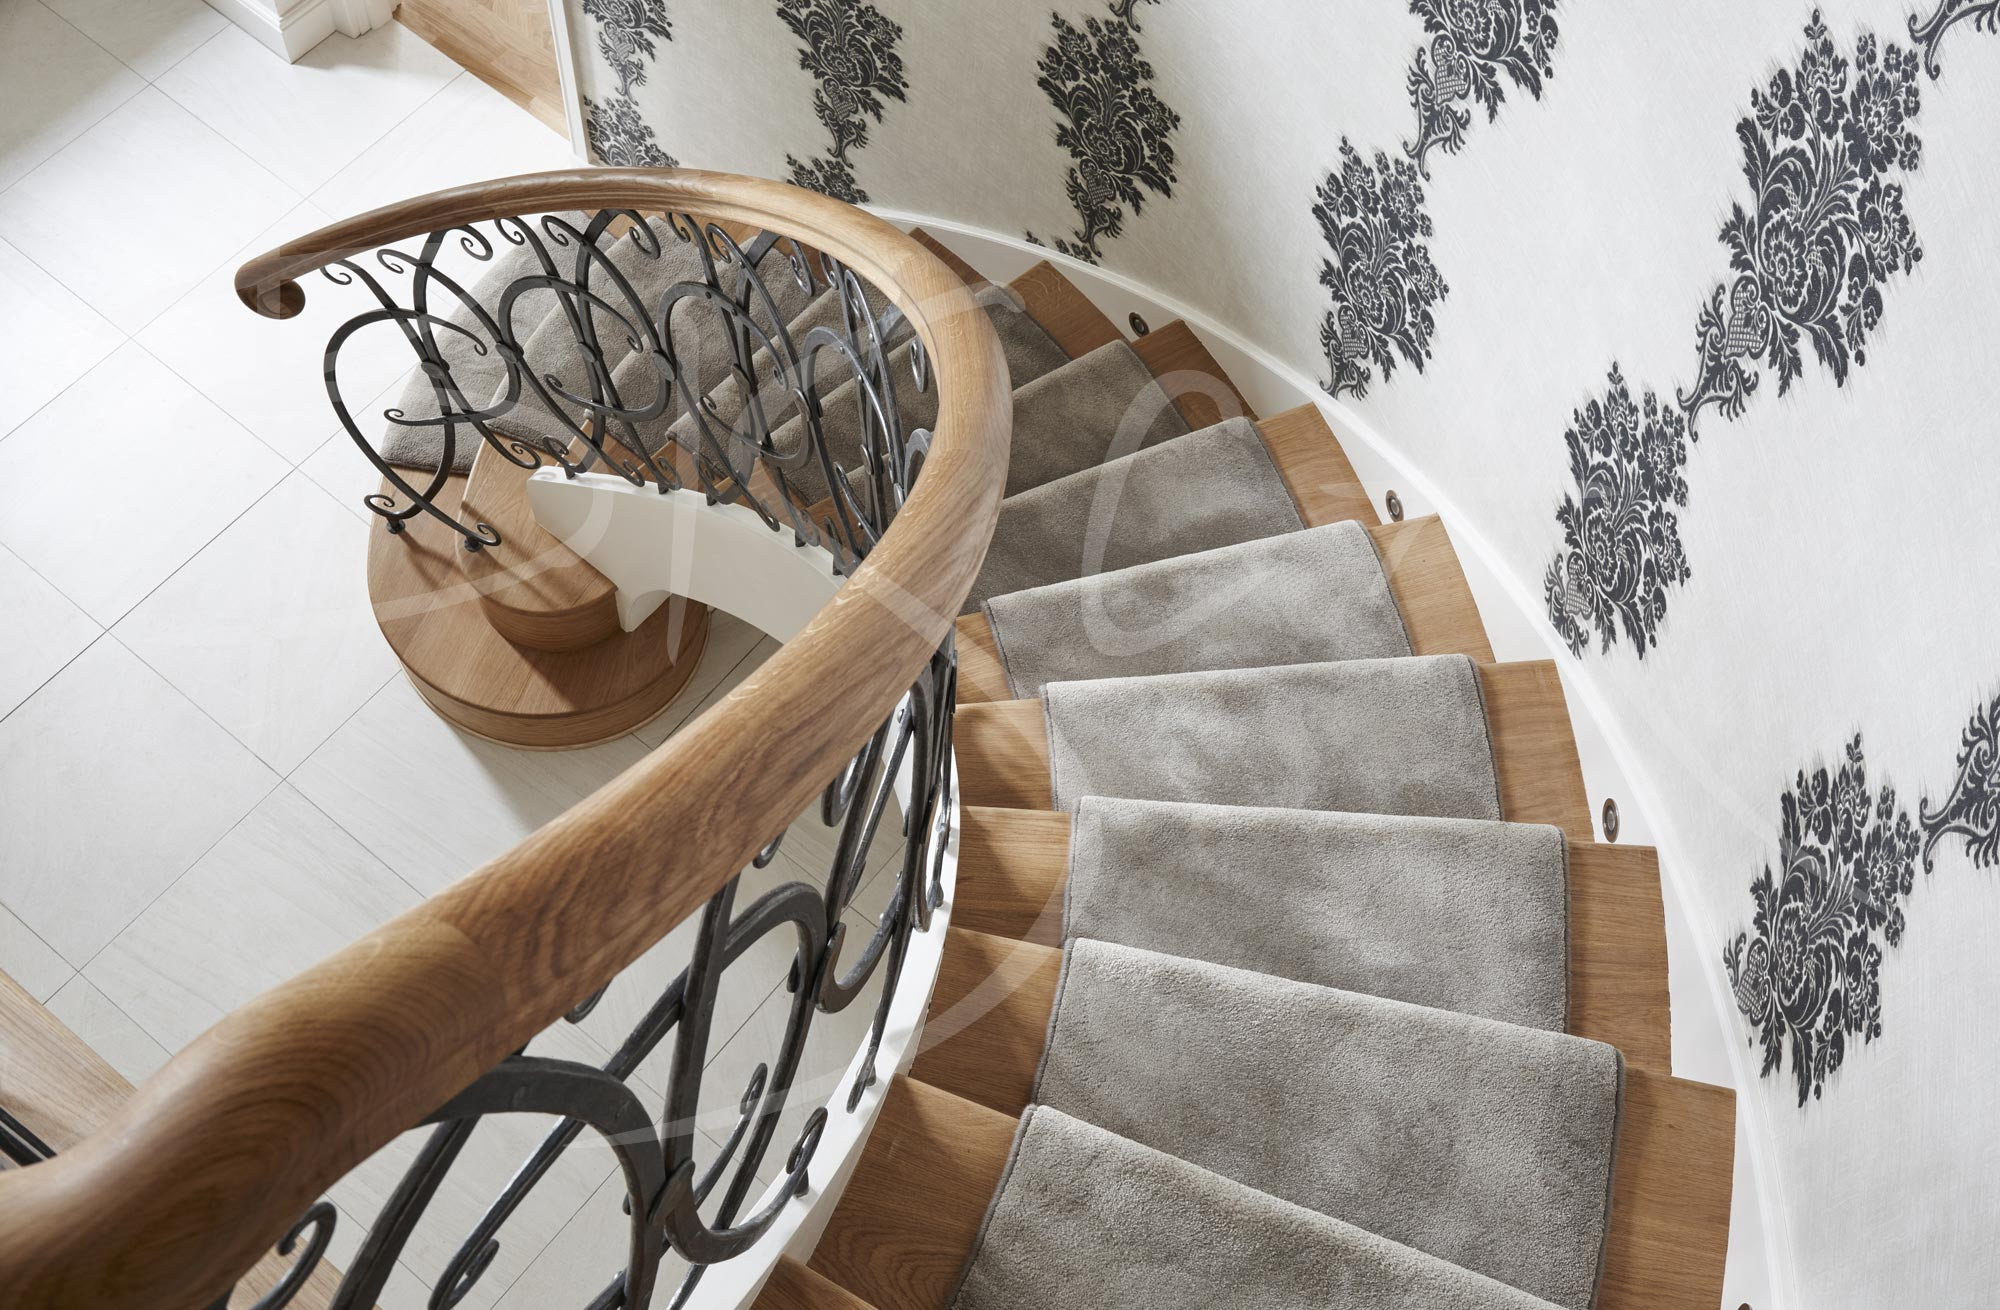 Wrought Iron Balustrade Staircase Renovations Bisca Staircase Design